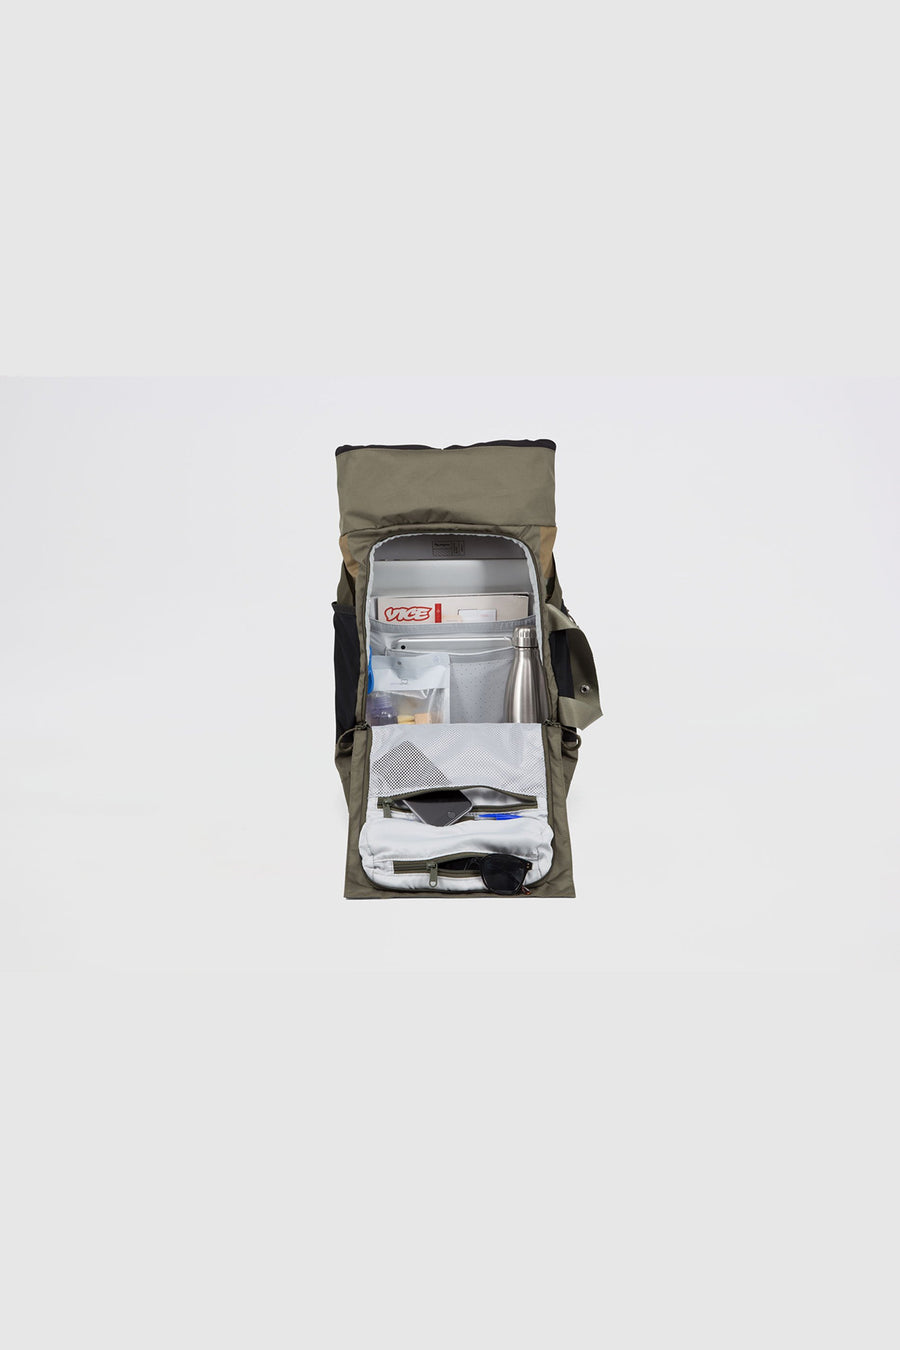 Pinqpong - Backpack Blok Medium (Tape Olive) PPC-BLM-001-253B